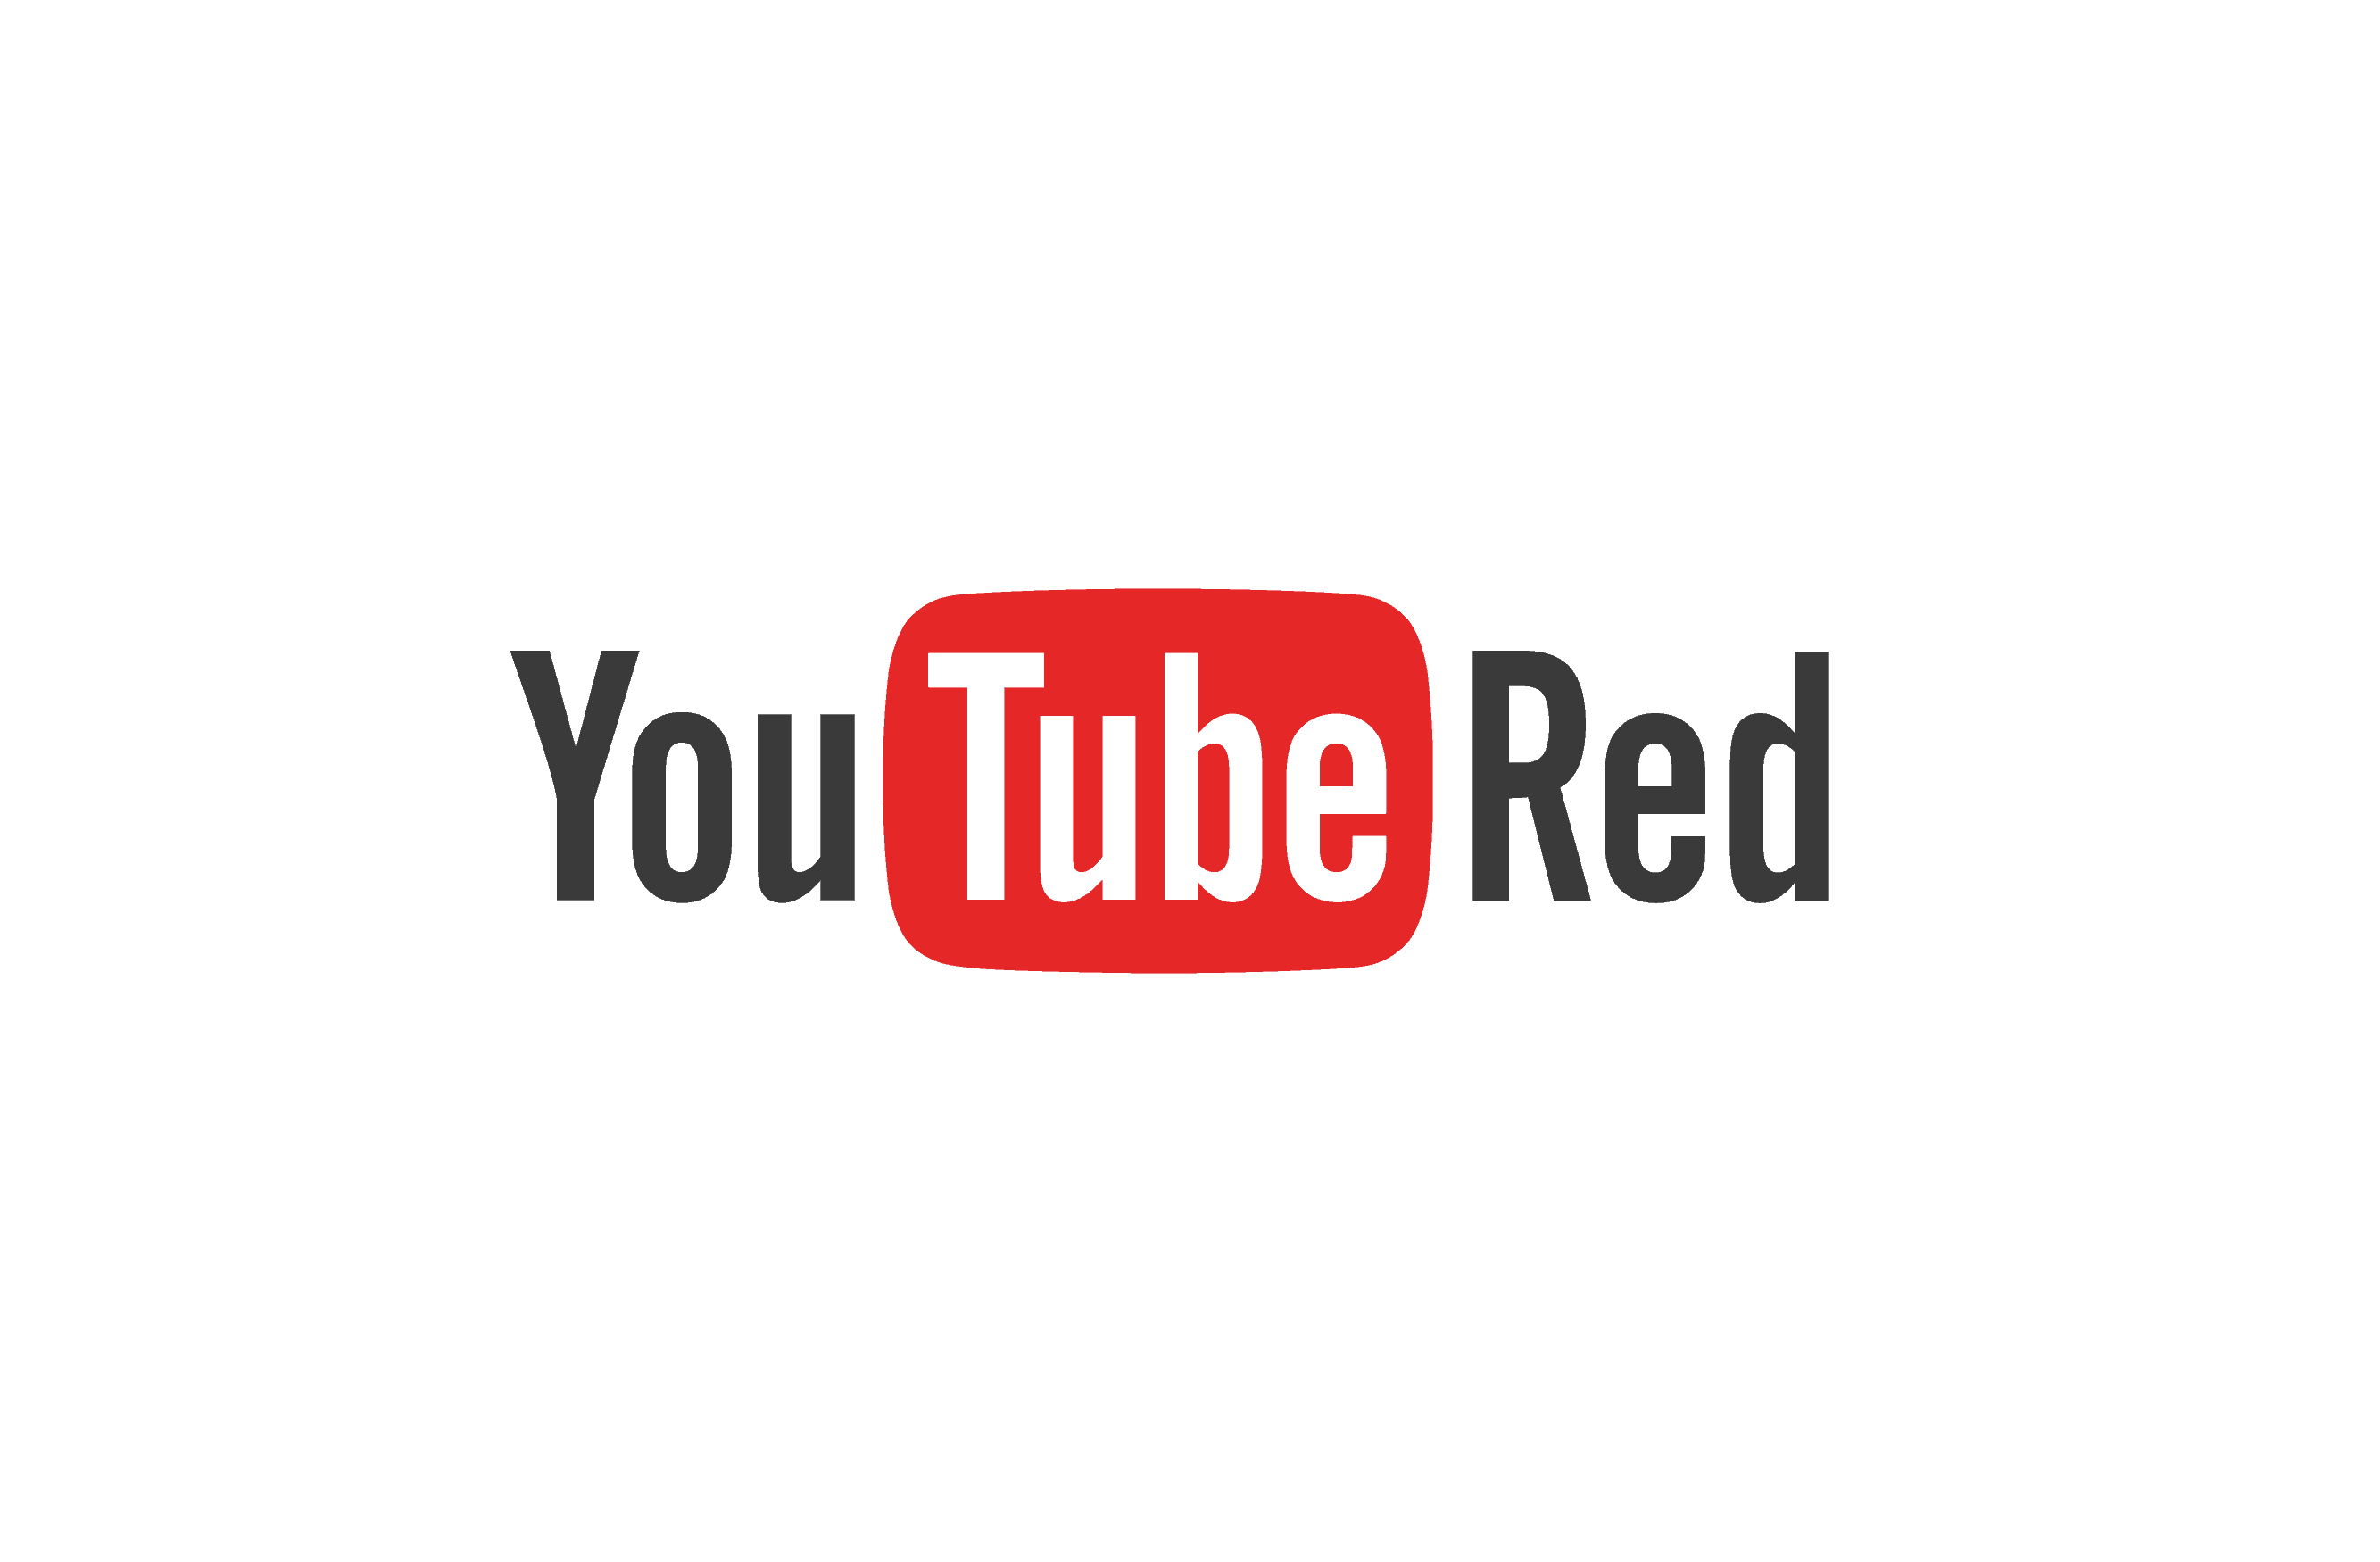 youtube red AH 1